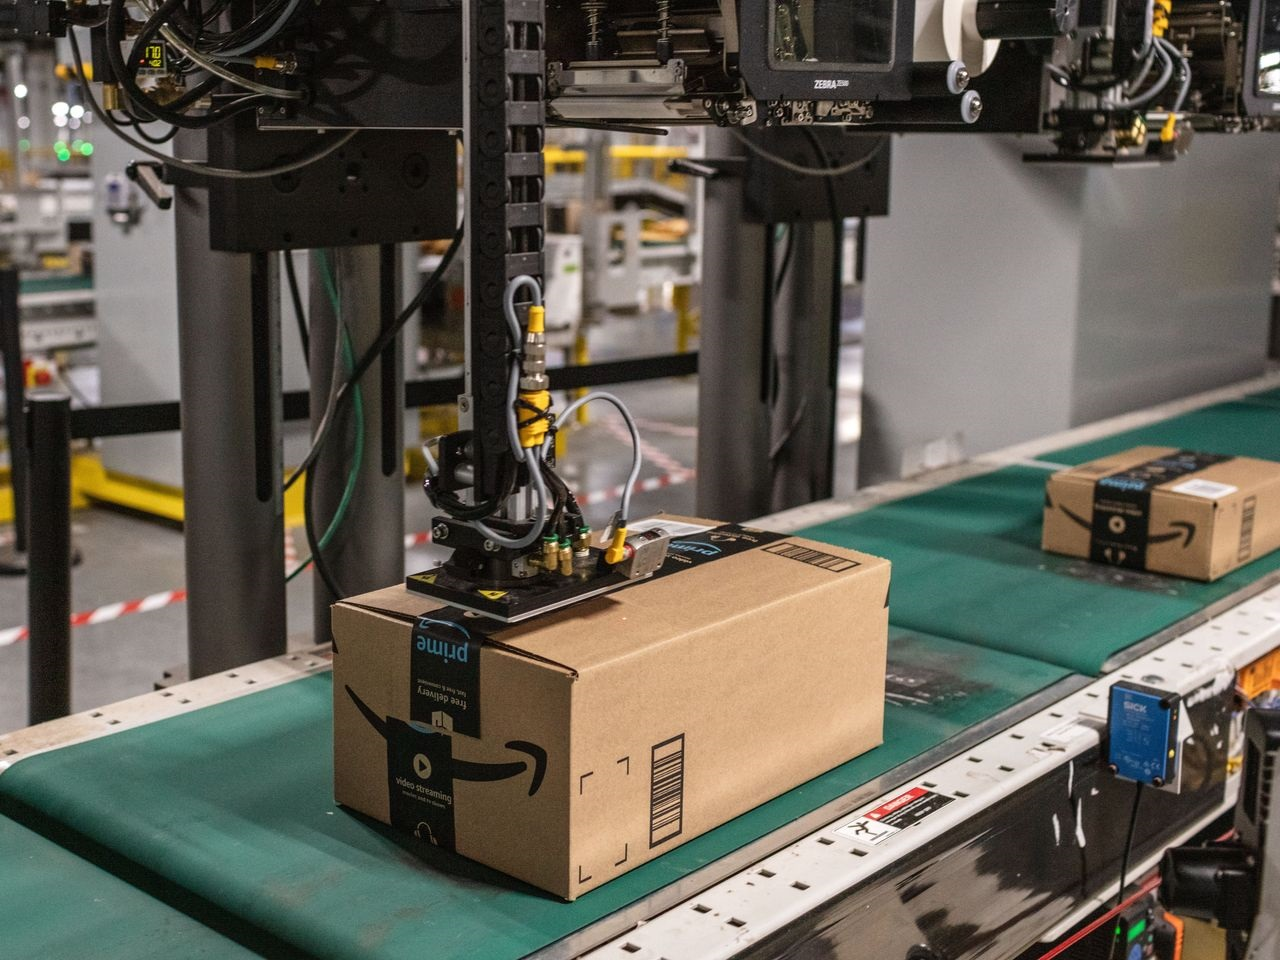 Amazon Settles Case With 2 Employees Who Said They Were Wrongly Fired